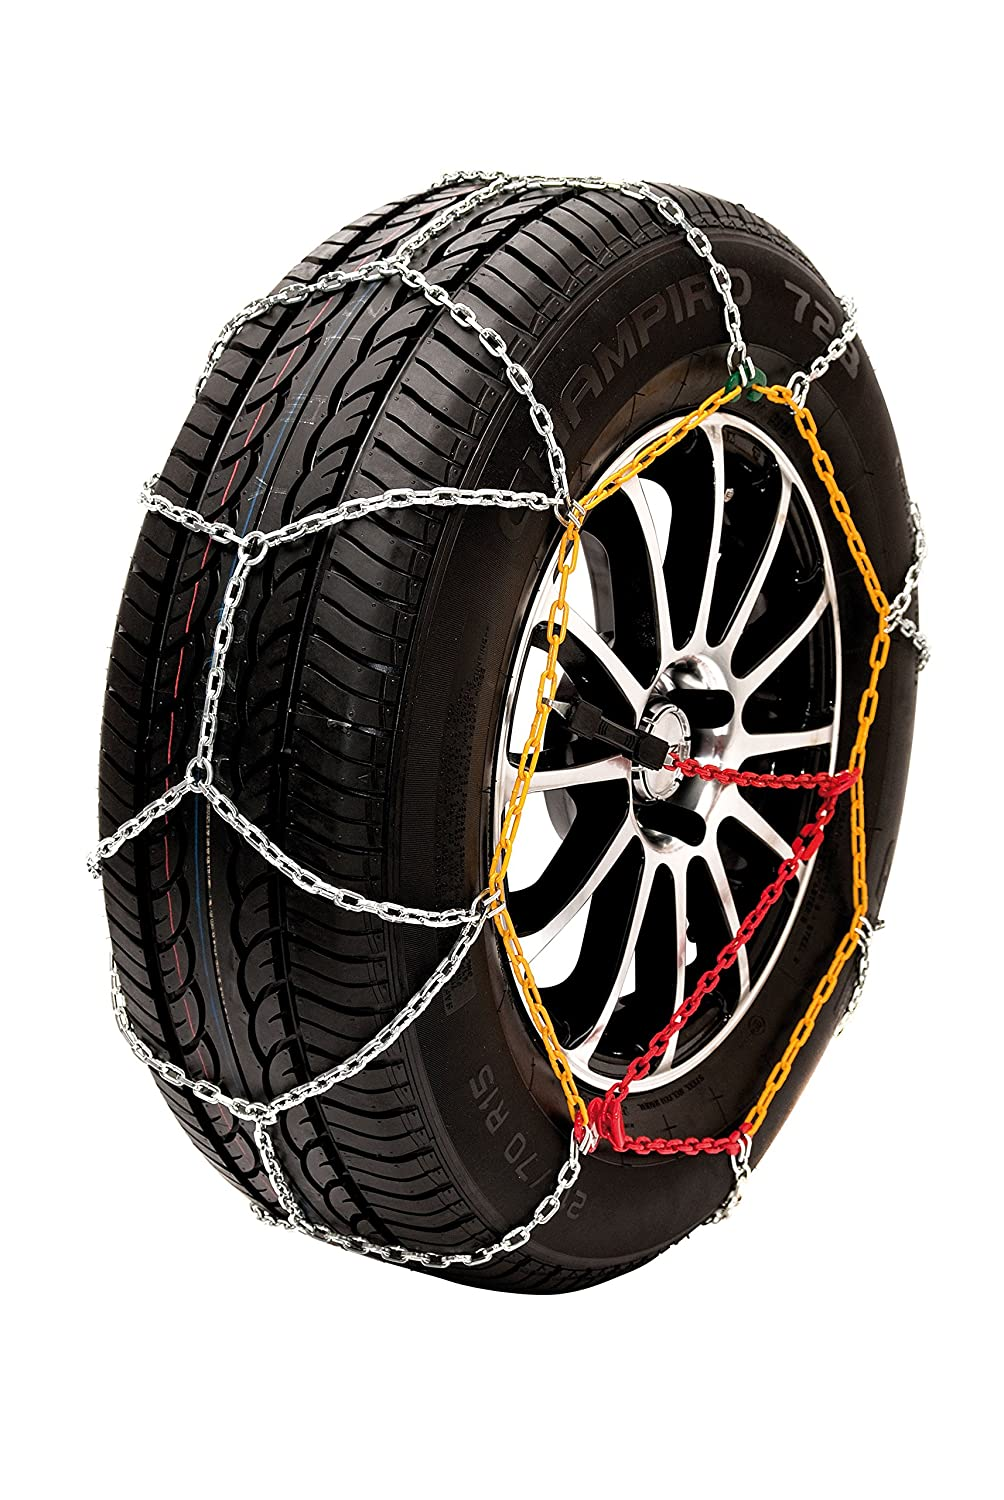 Top 25 Best Snow Tire Chains For Cars Trucks And Suvs 2017 2018 On